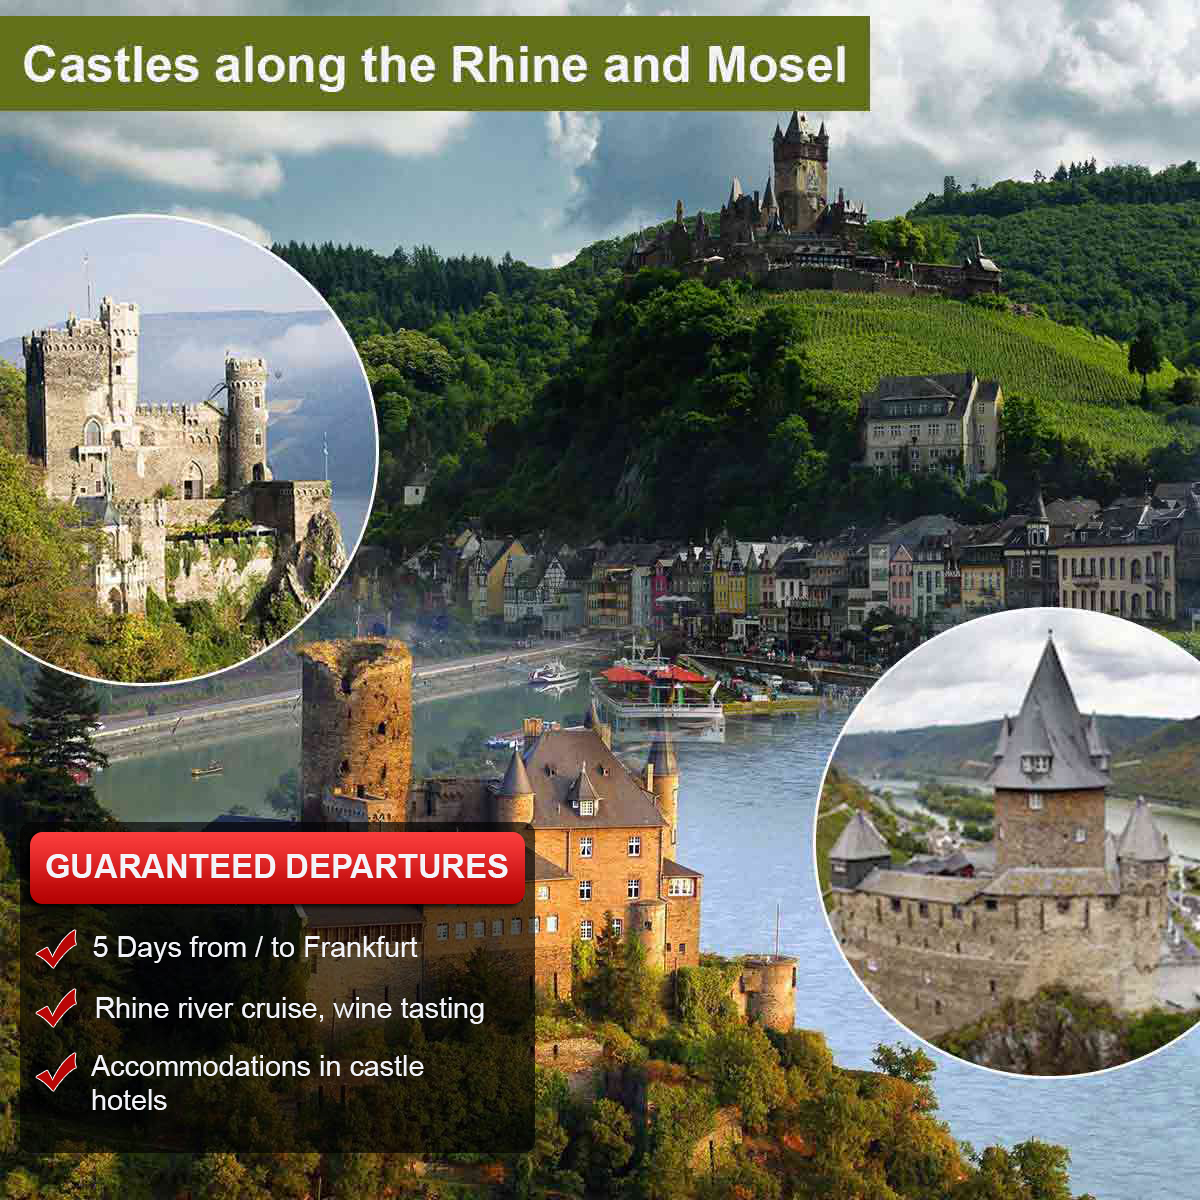 Castles along the Rhine and Moselle